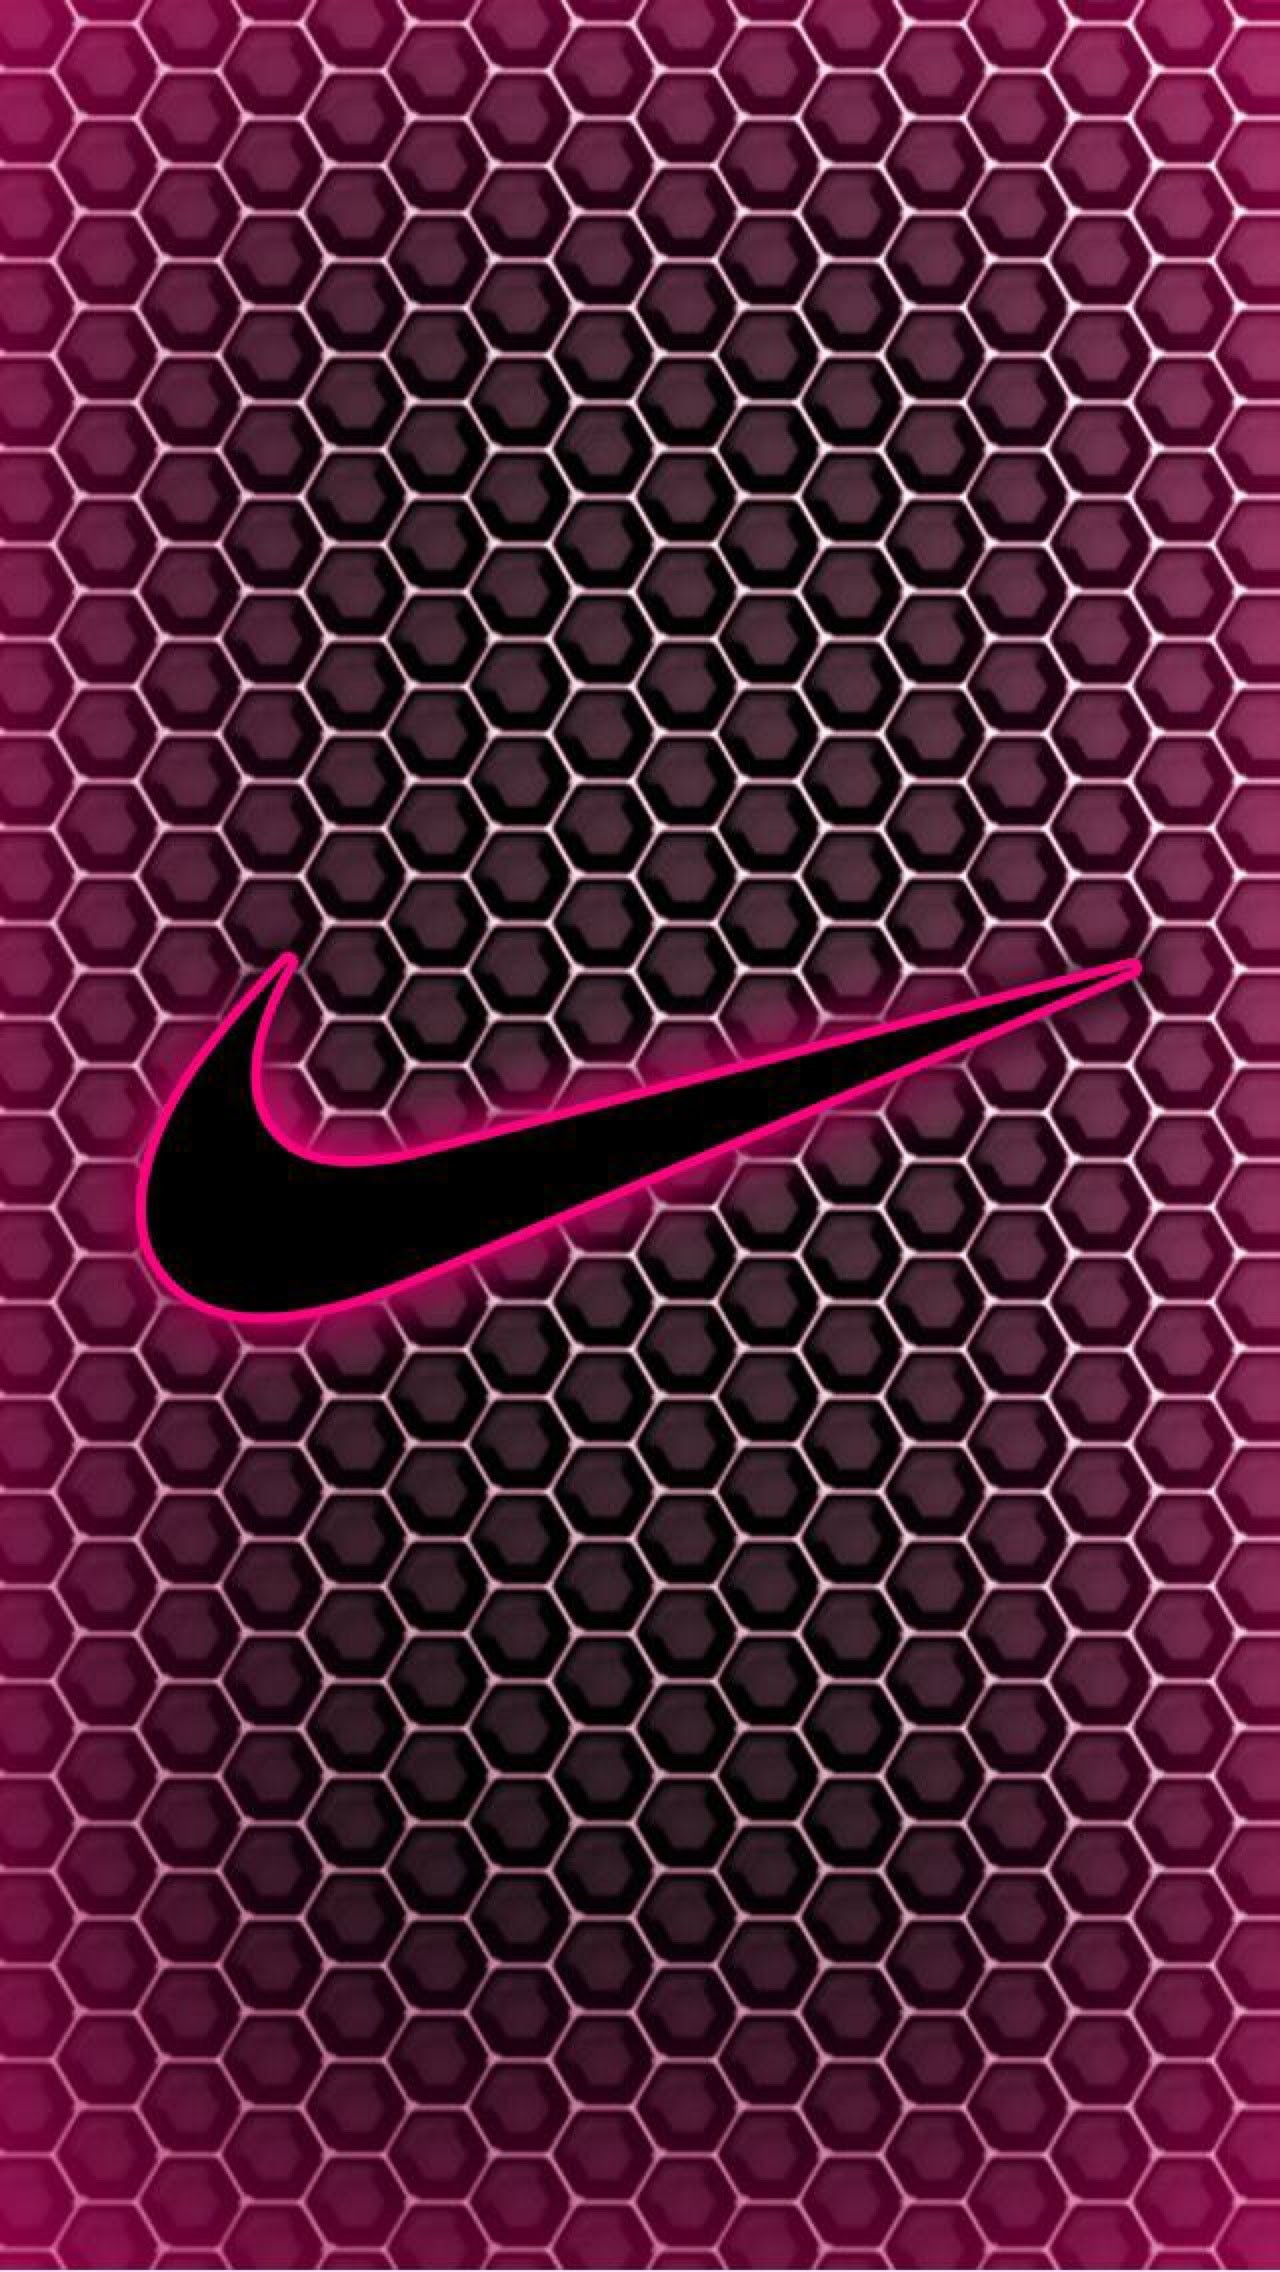 Wallpapers Fofos in addition Pink Nike Wallpaper additionally Gigi Hadids Armpit Hair Was Fake in addition Fotografia Perro likewise Fruits Gif. on pink tumblr